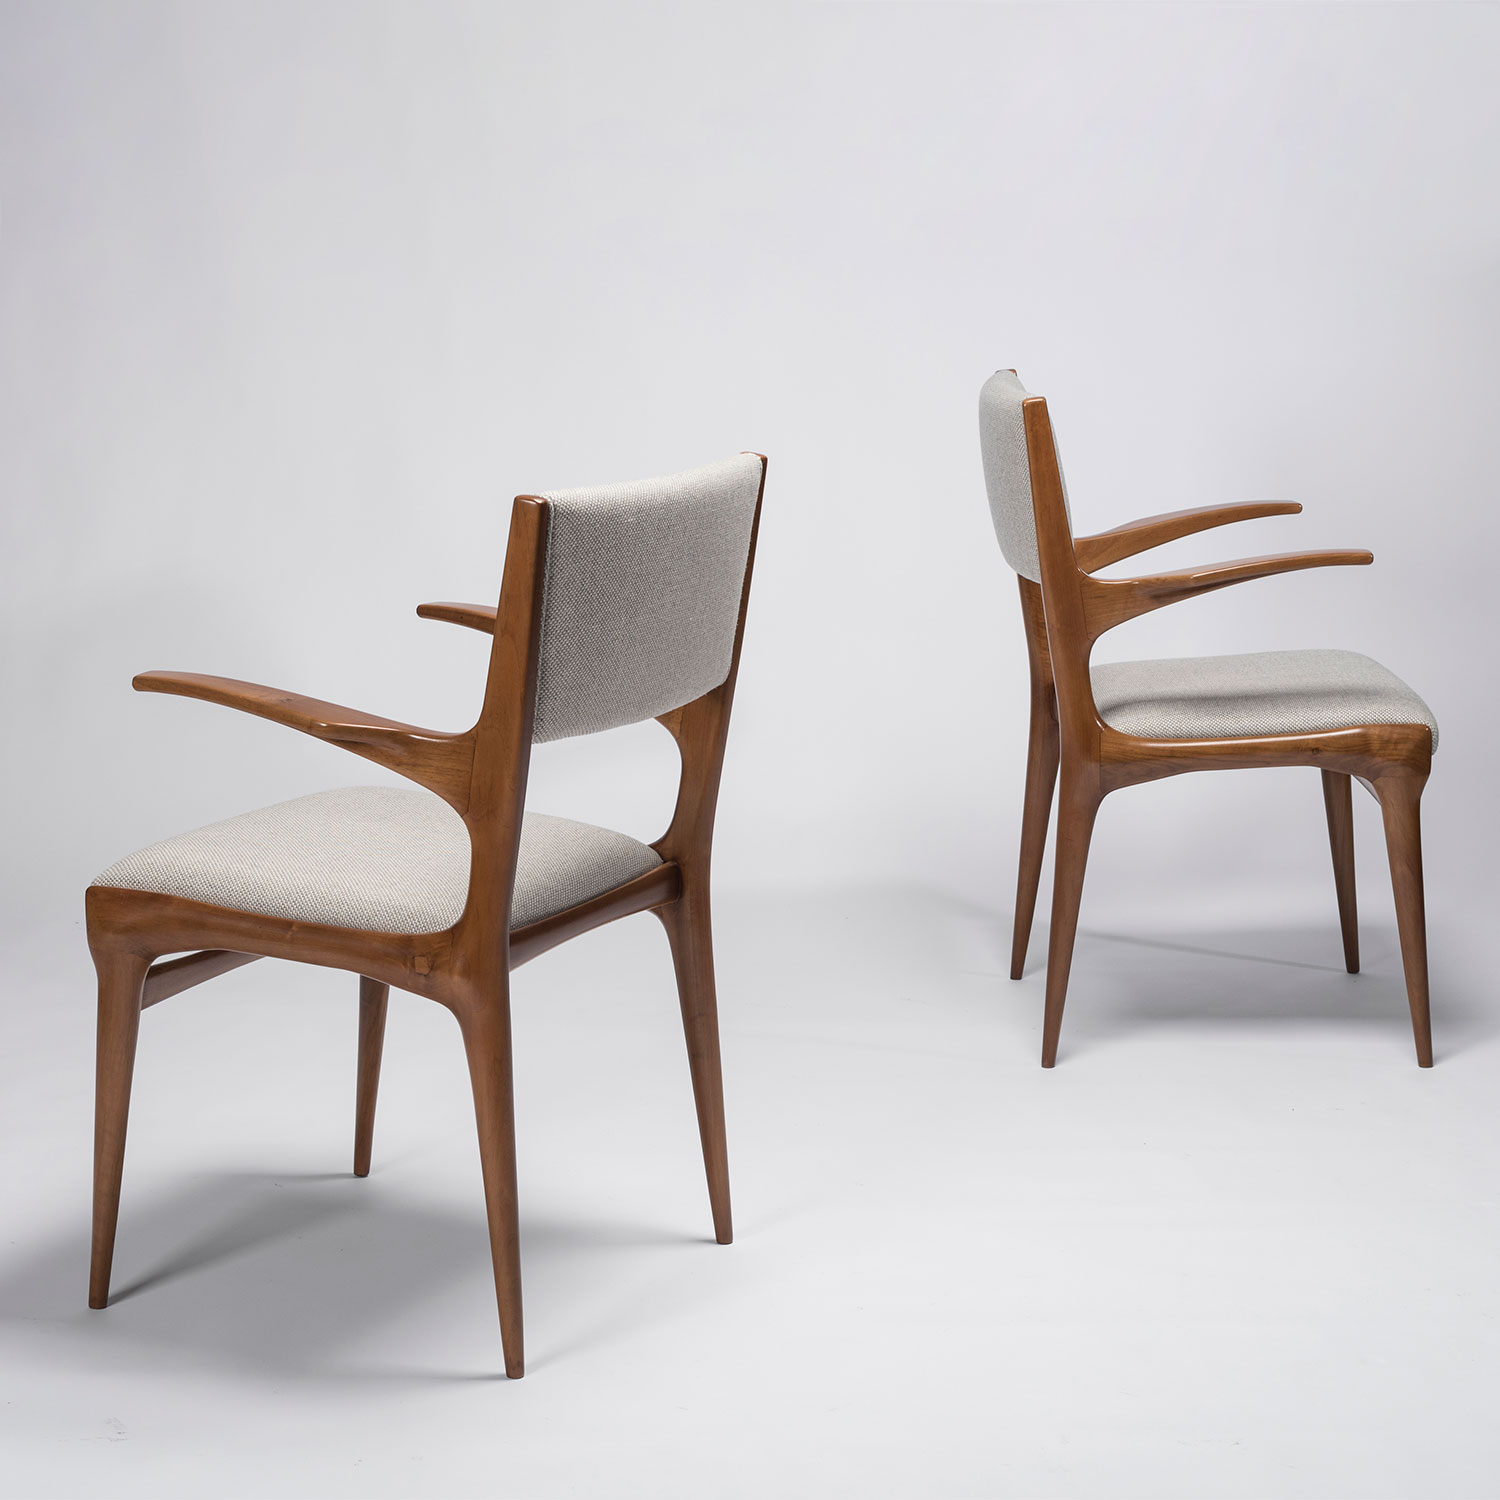 Carlo De Carli |                                  Set of 8 chairs, model 1585 and model 162